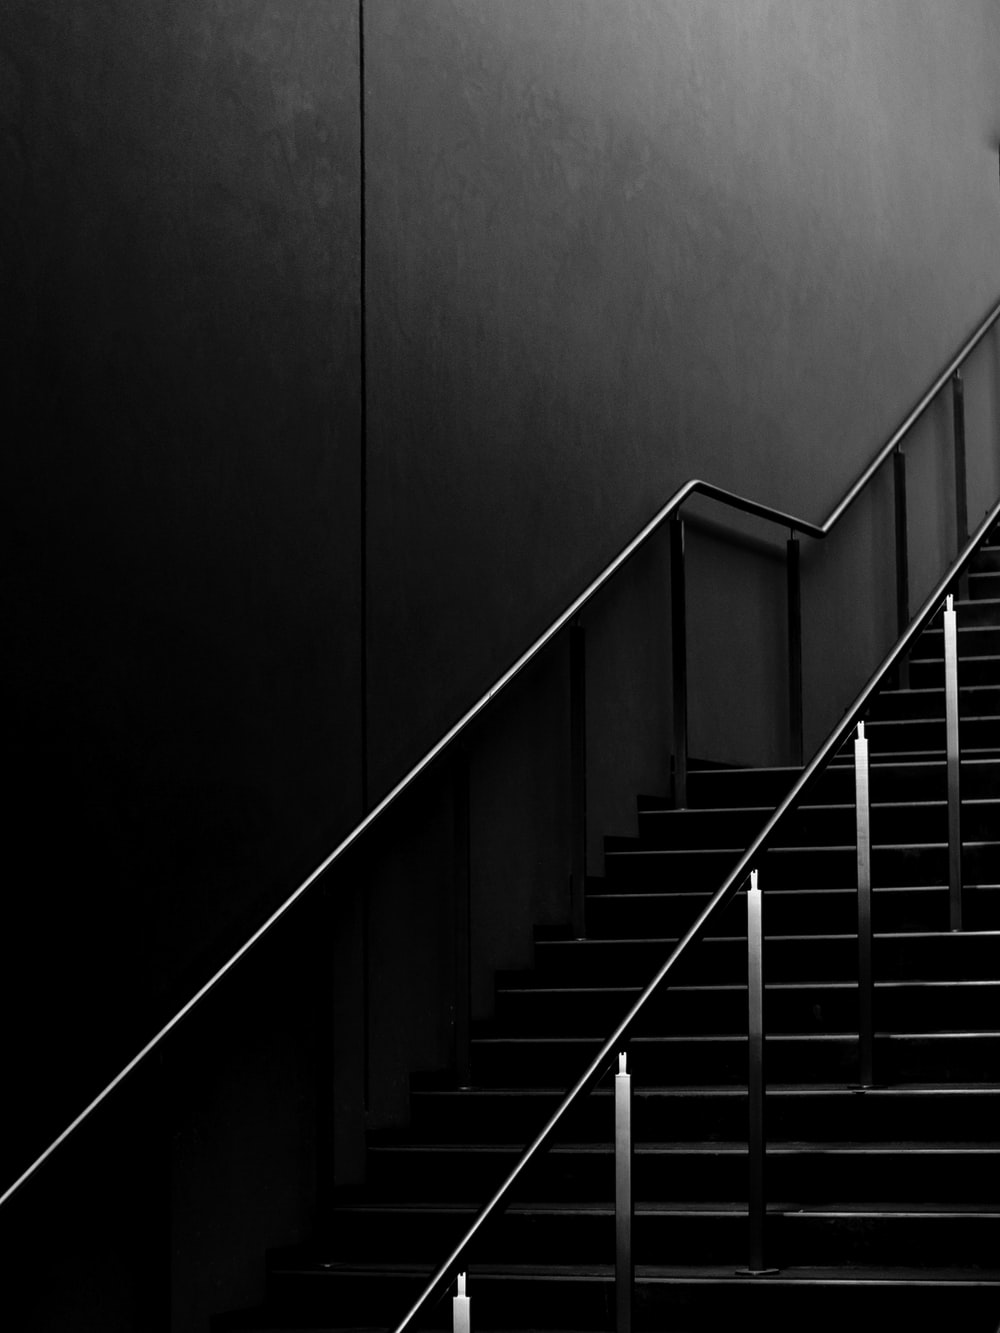 grayscale photo of staircase with railings